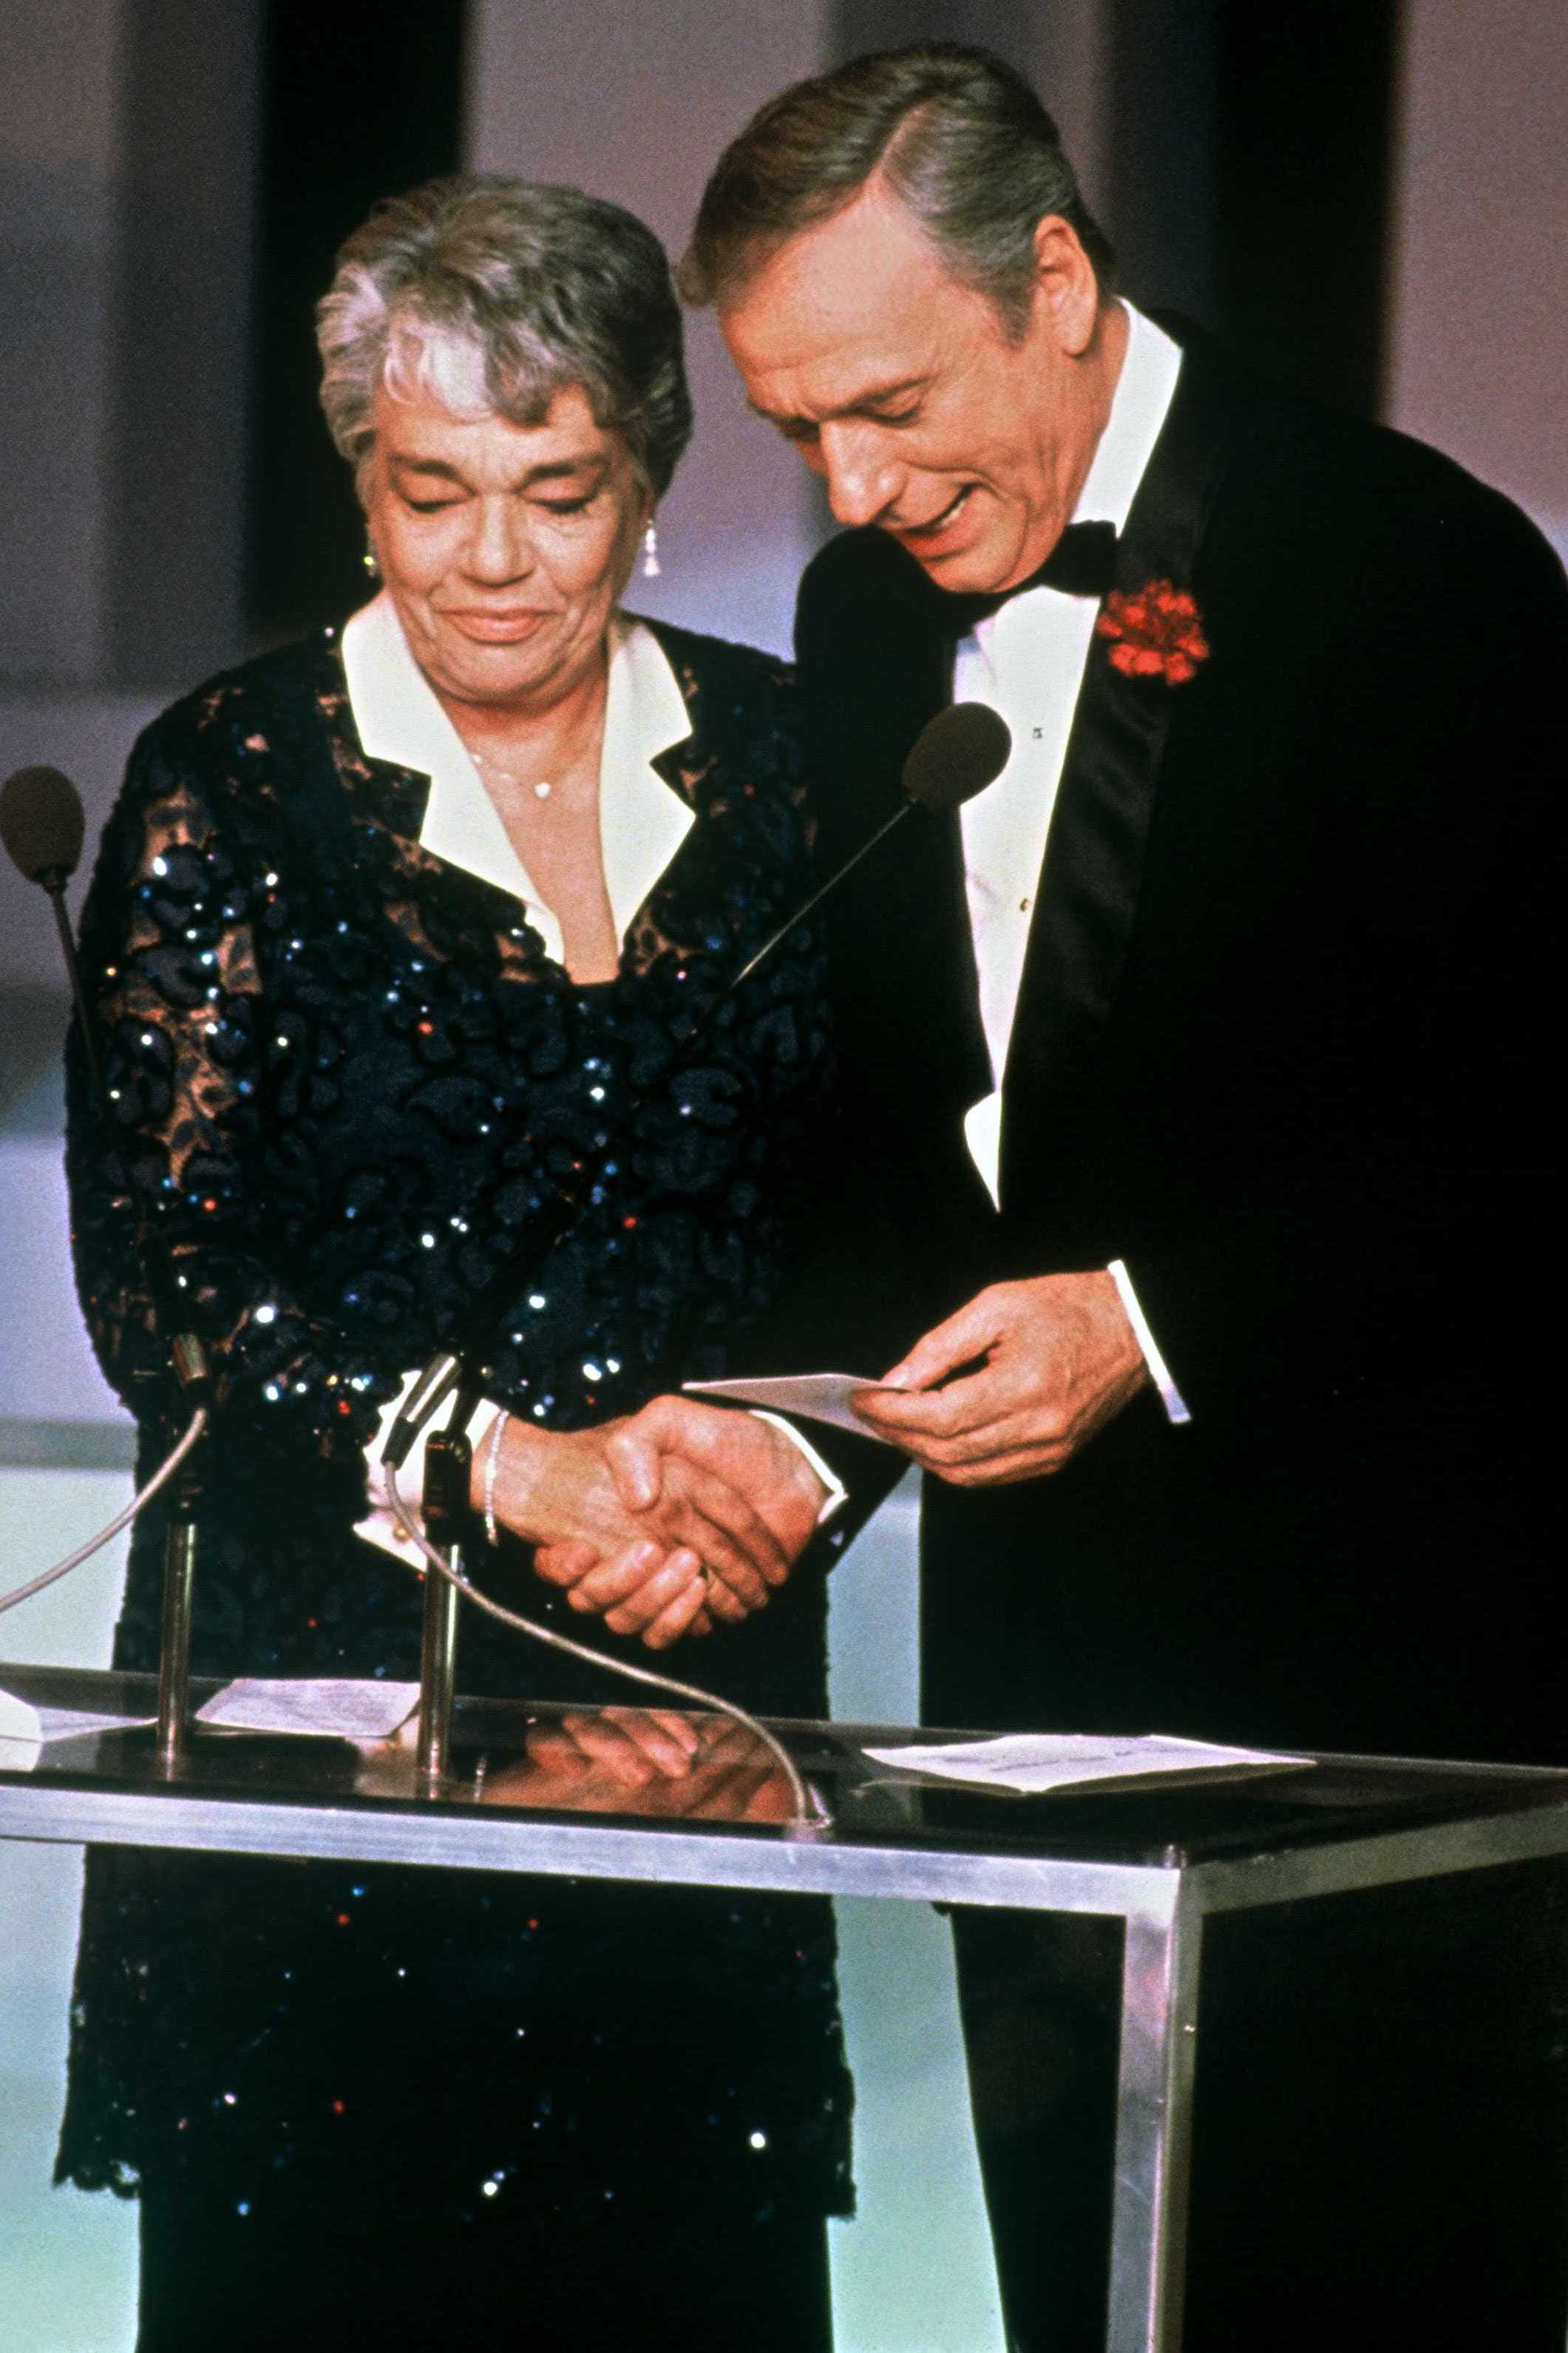 Avec yves montand aux c sar 1985 simone signoret for Le jardin yves montand